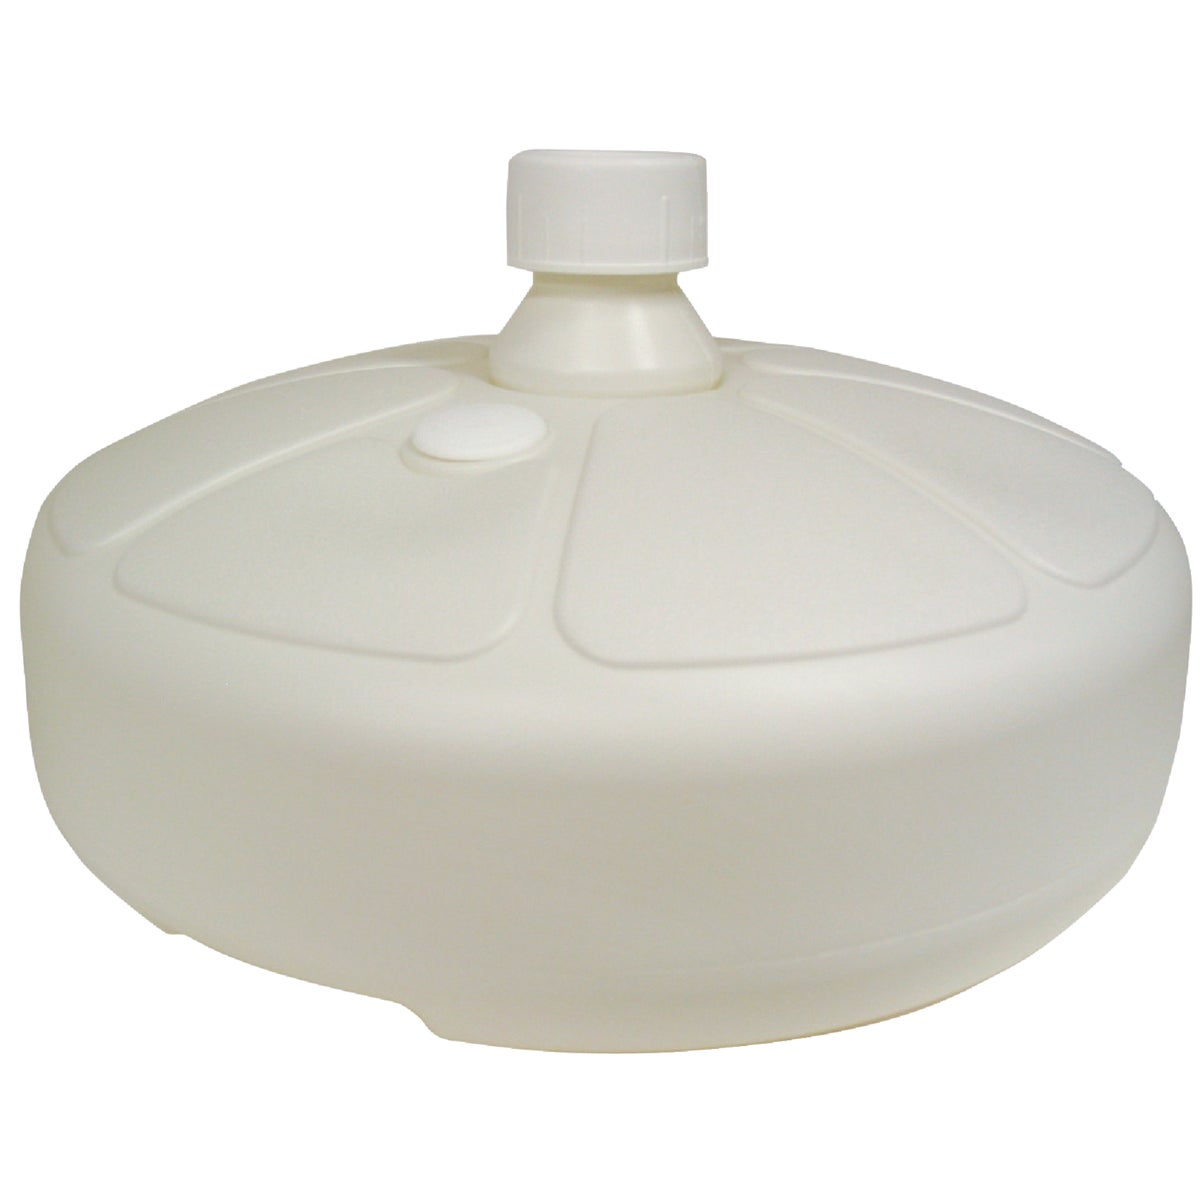 WHITE UMBRELLA BASE - 8129-48-3716 by Adams Mfg Patio Furn